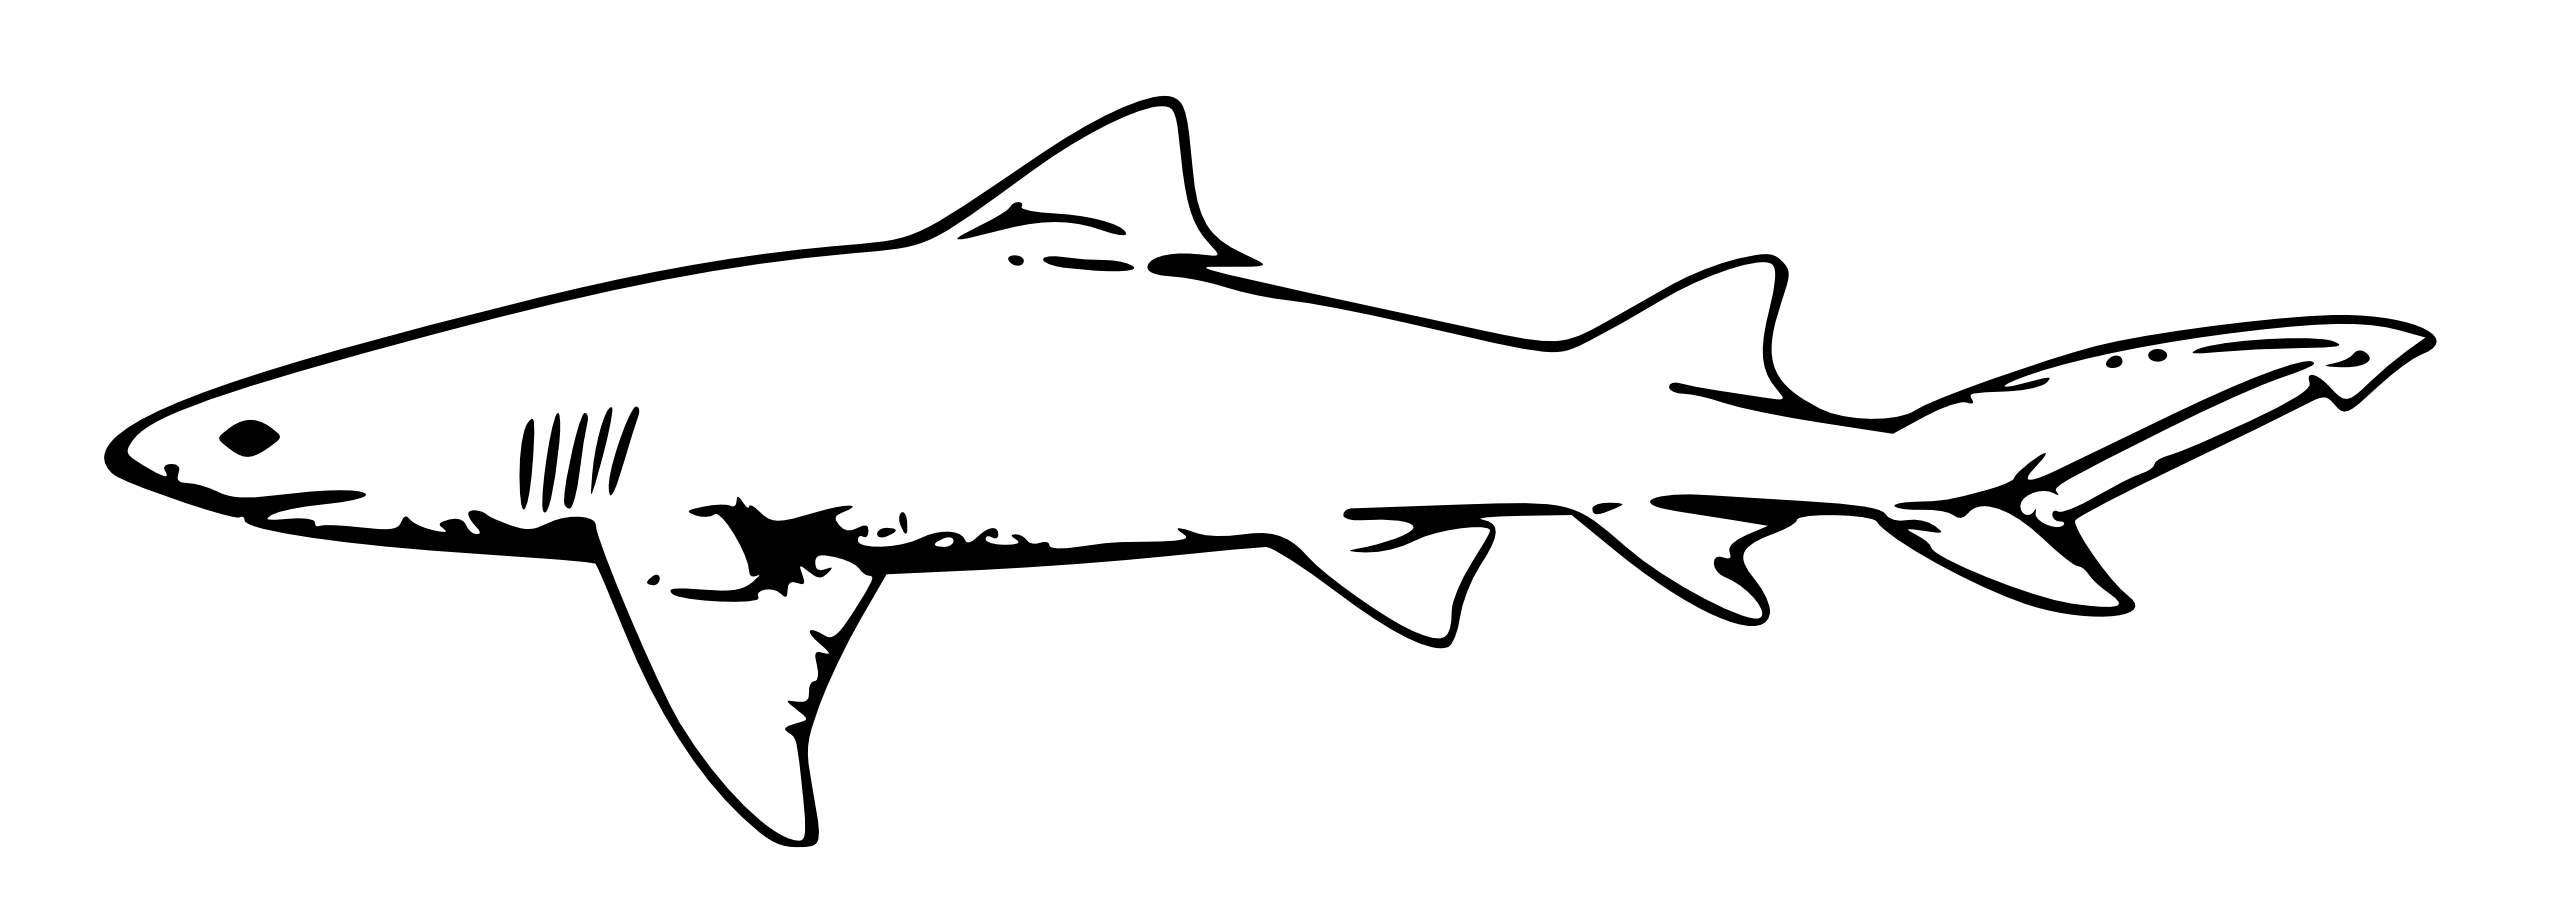 Drawing nemo shark head. Free great white clipart